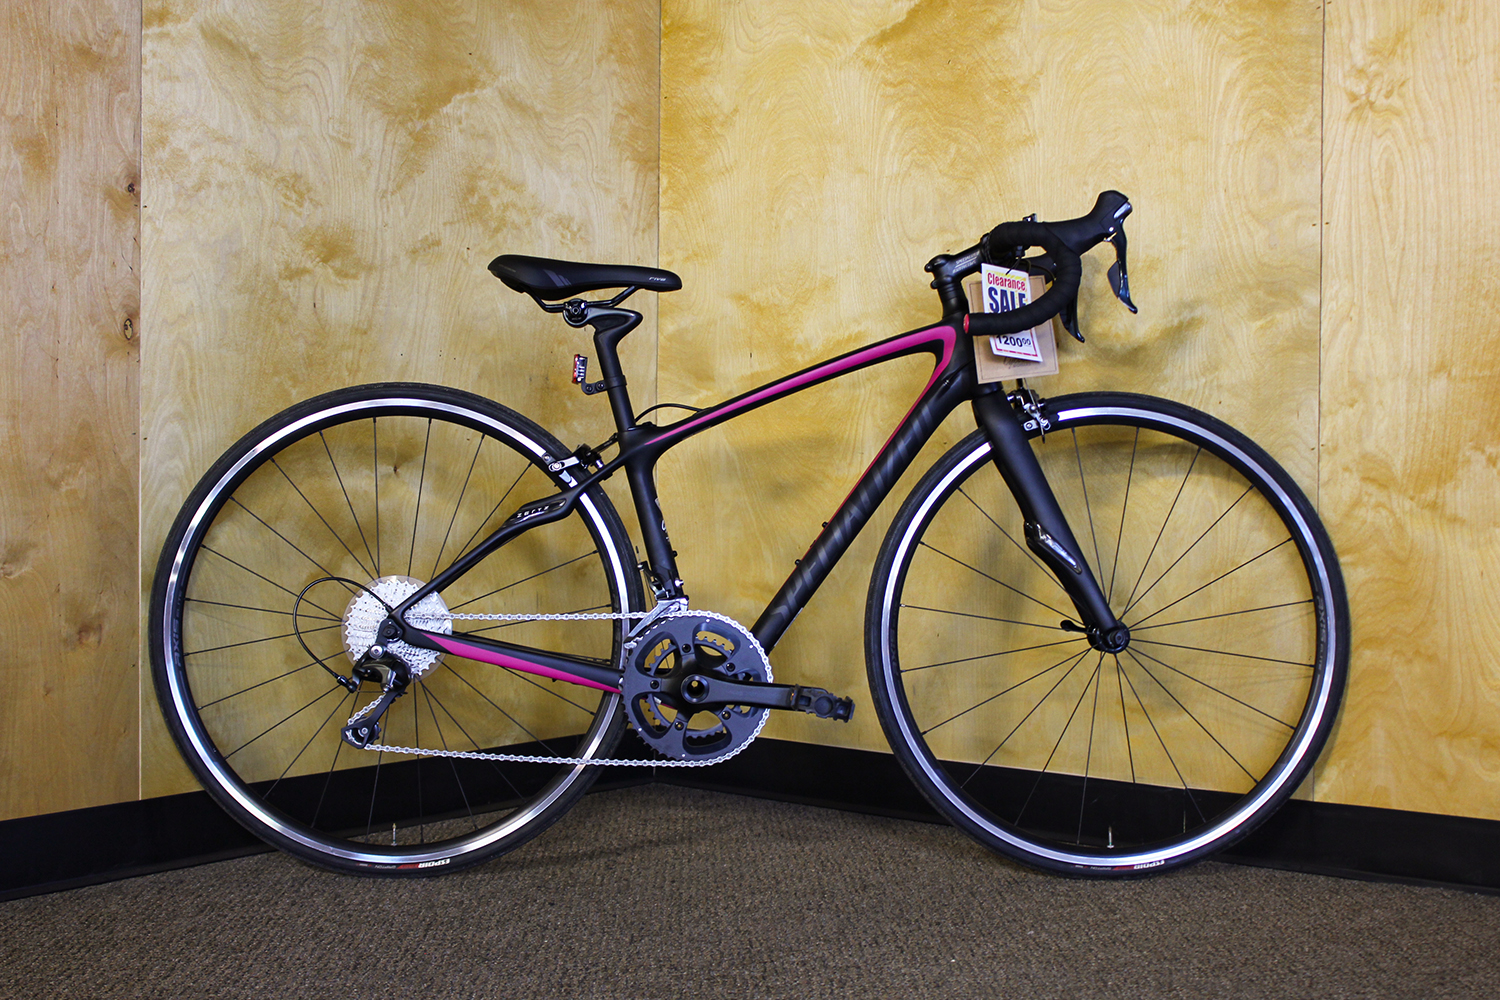 17 Specialized Ruby SL4 44cm - MSRP $1700Sale Price $1200- Full carbon FACT 9r frame- Shimano Tiagra 2x10 drivetrain- Endurance Road geometry